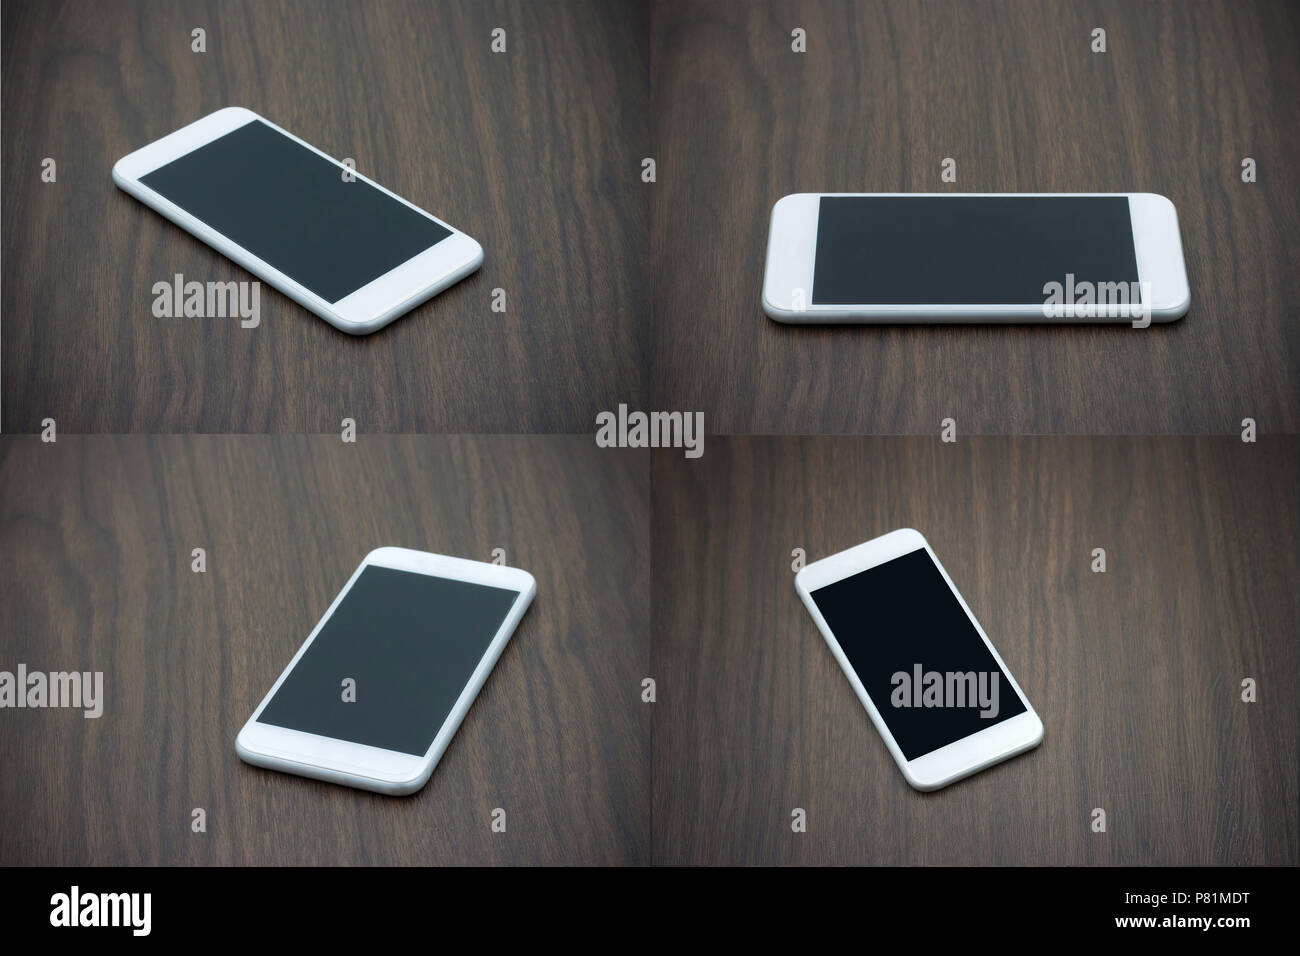 Smart phone in white color with blank screen laying on wooden table